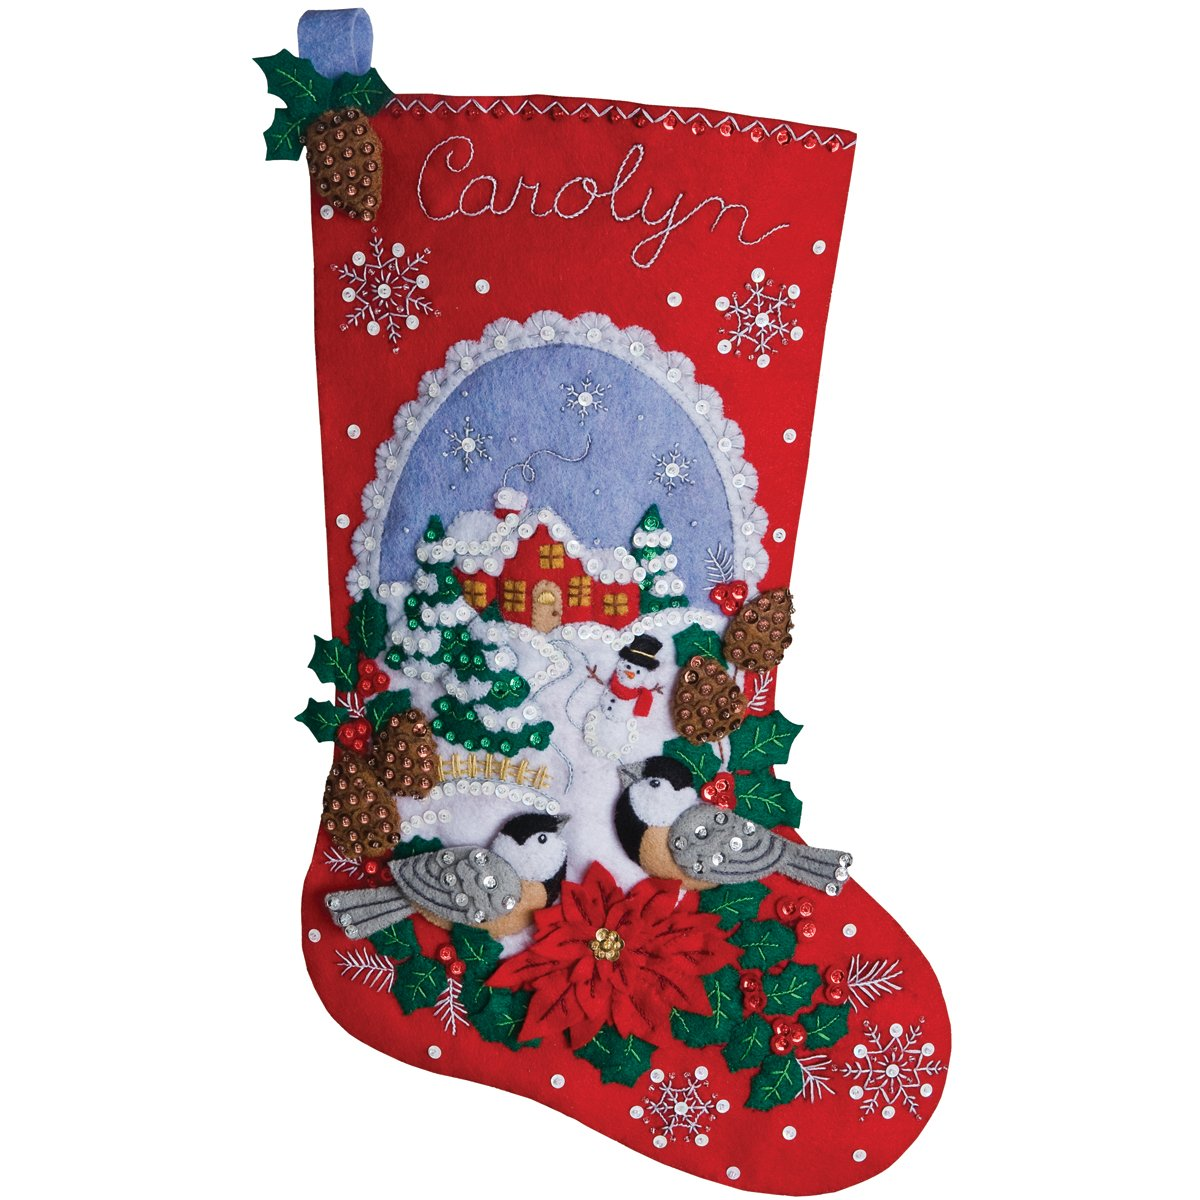 Bucilla 18-Inch Christmas Stocking Felt Applique Kit, 86326 Chickadees by Bucilla